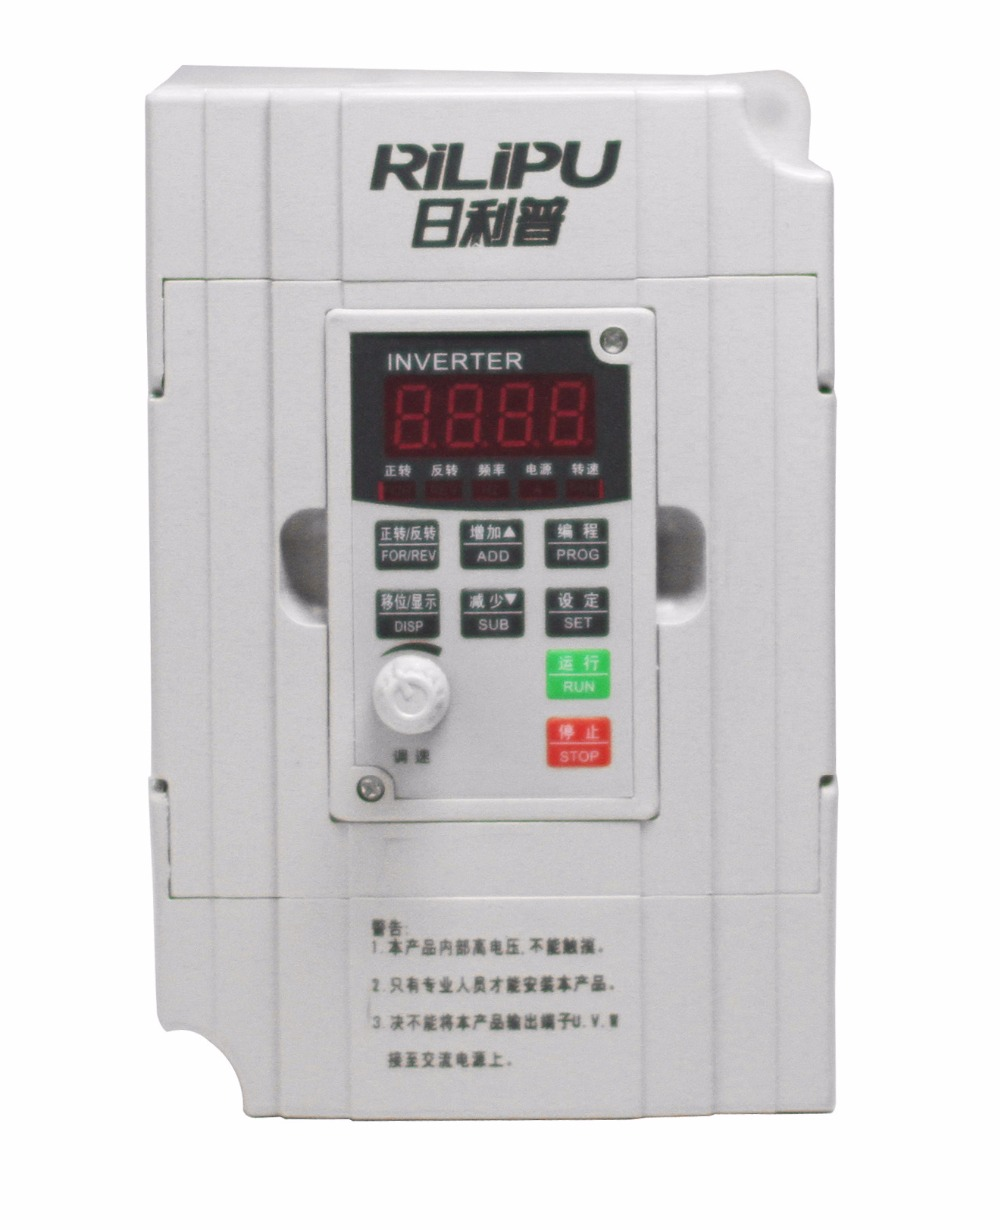 RiLiPu Inverter VFD Frequency Converter 220v 1.5KW  Common-use Output 3-phases 220v  free shipping vfd110cp43b 21 delta vfd cp2000 vfd inverter frequency converter 11kw 15hp 3ph ac380 480v 600hz fan and water pump